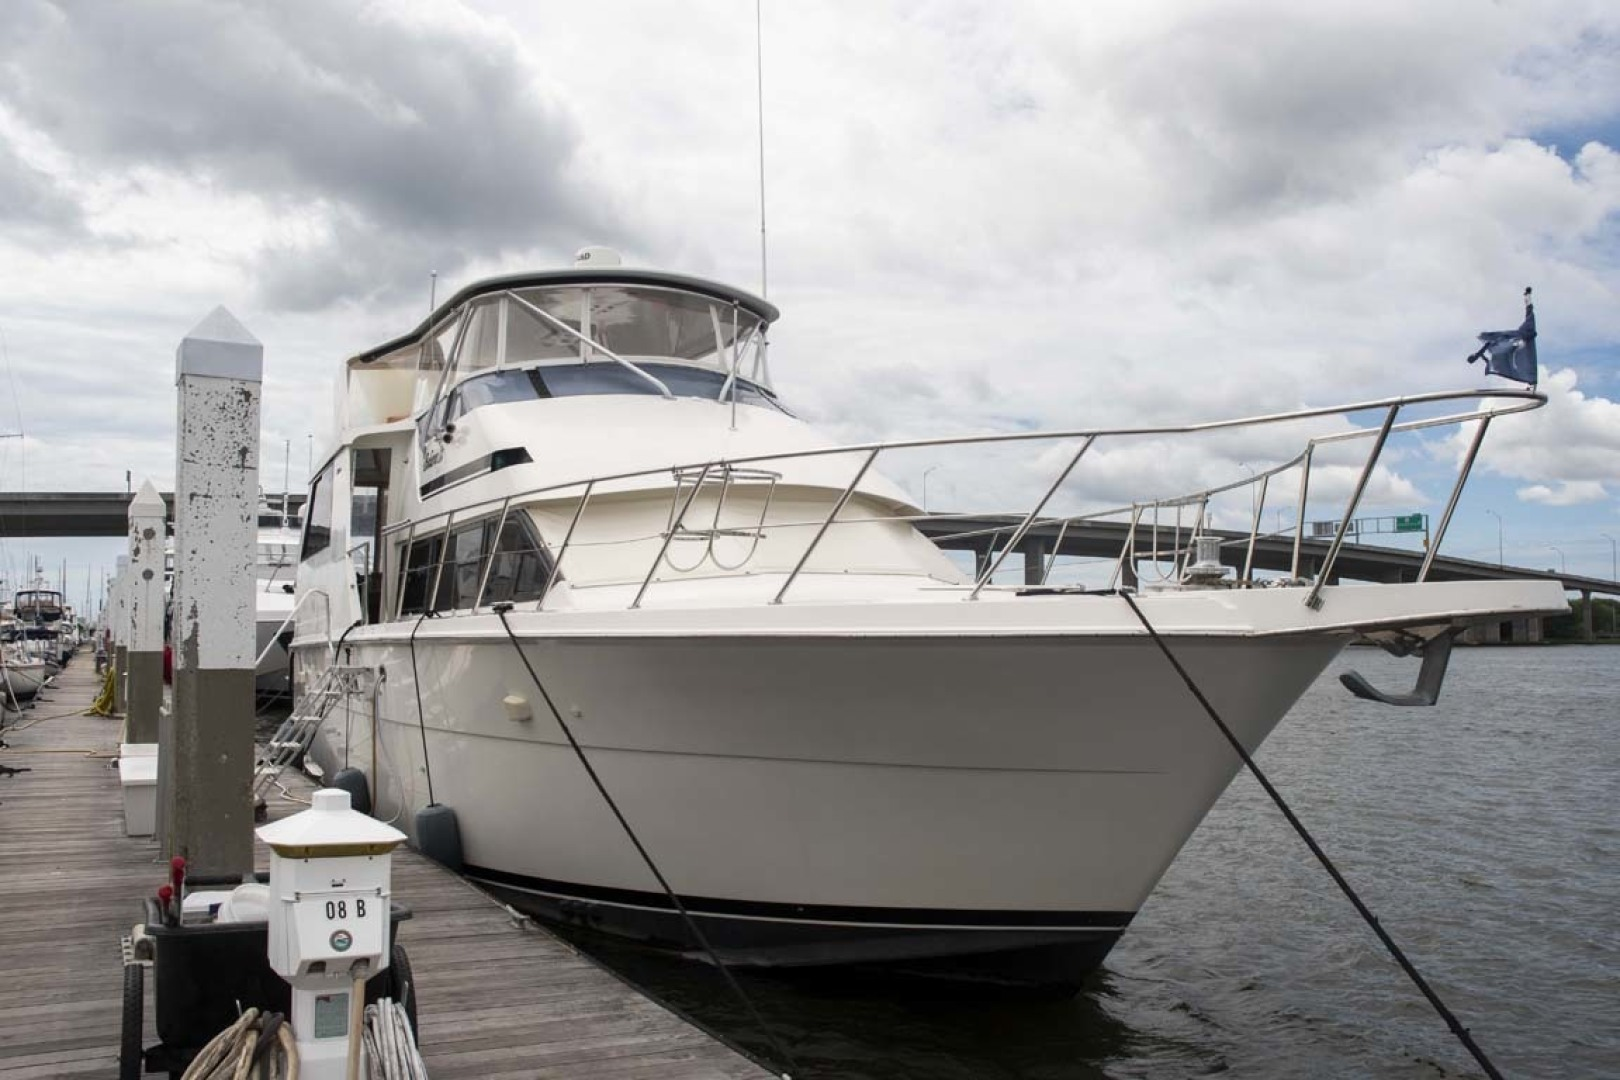 Hatteras-52 Cockpit Motor Yacht 1994-Believe It Mount Pleasant-South Carolina-United States-Main Profile-1415467 | Thumbnail